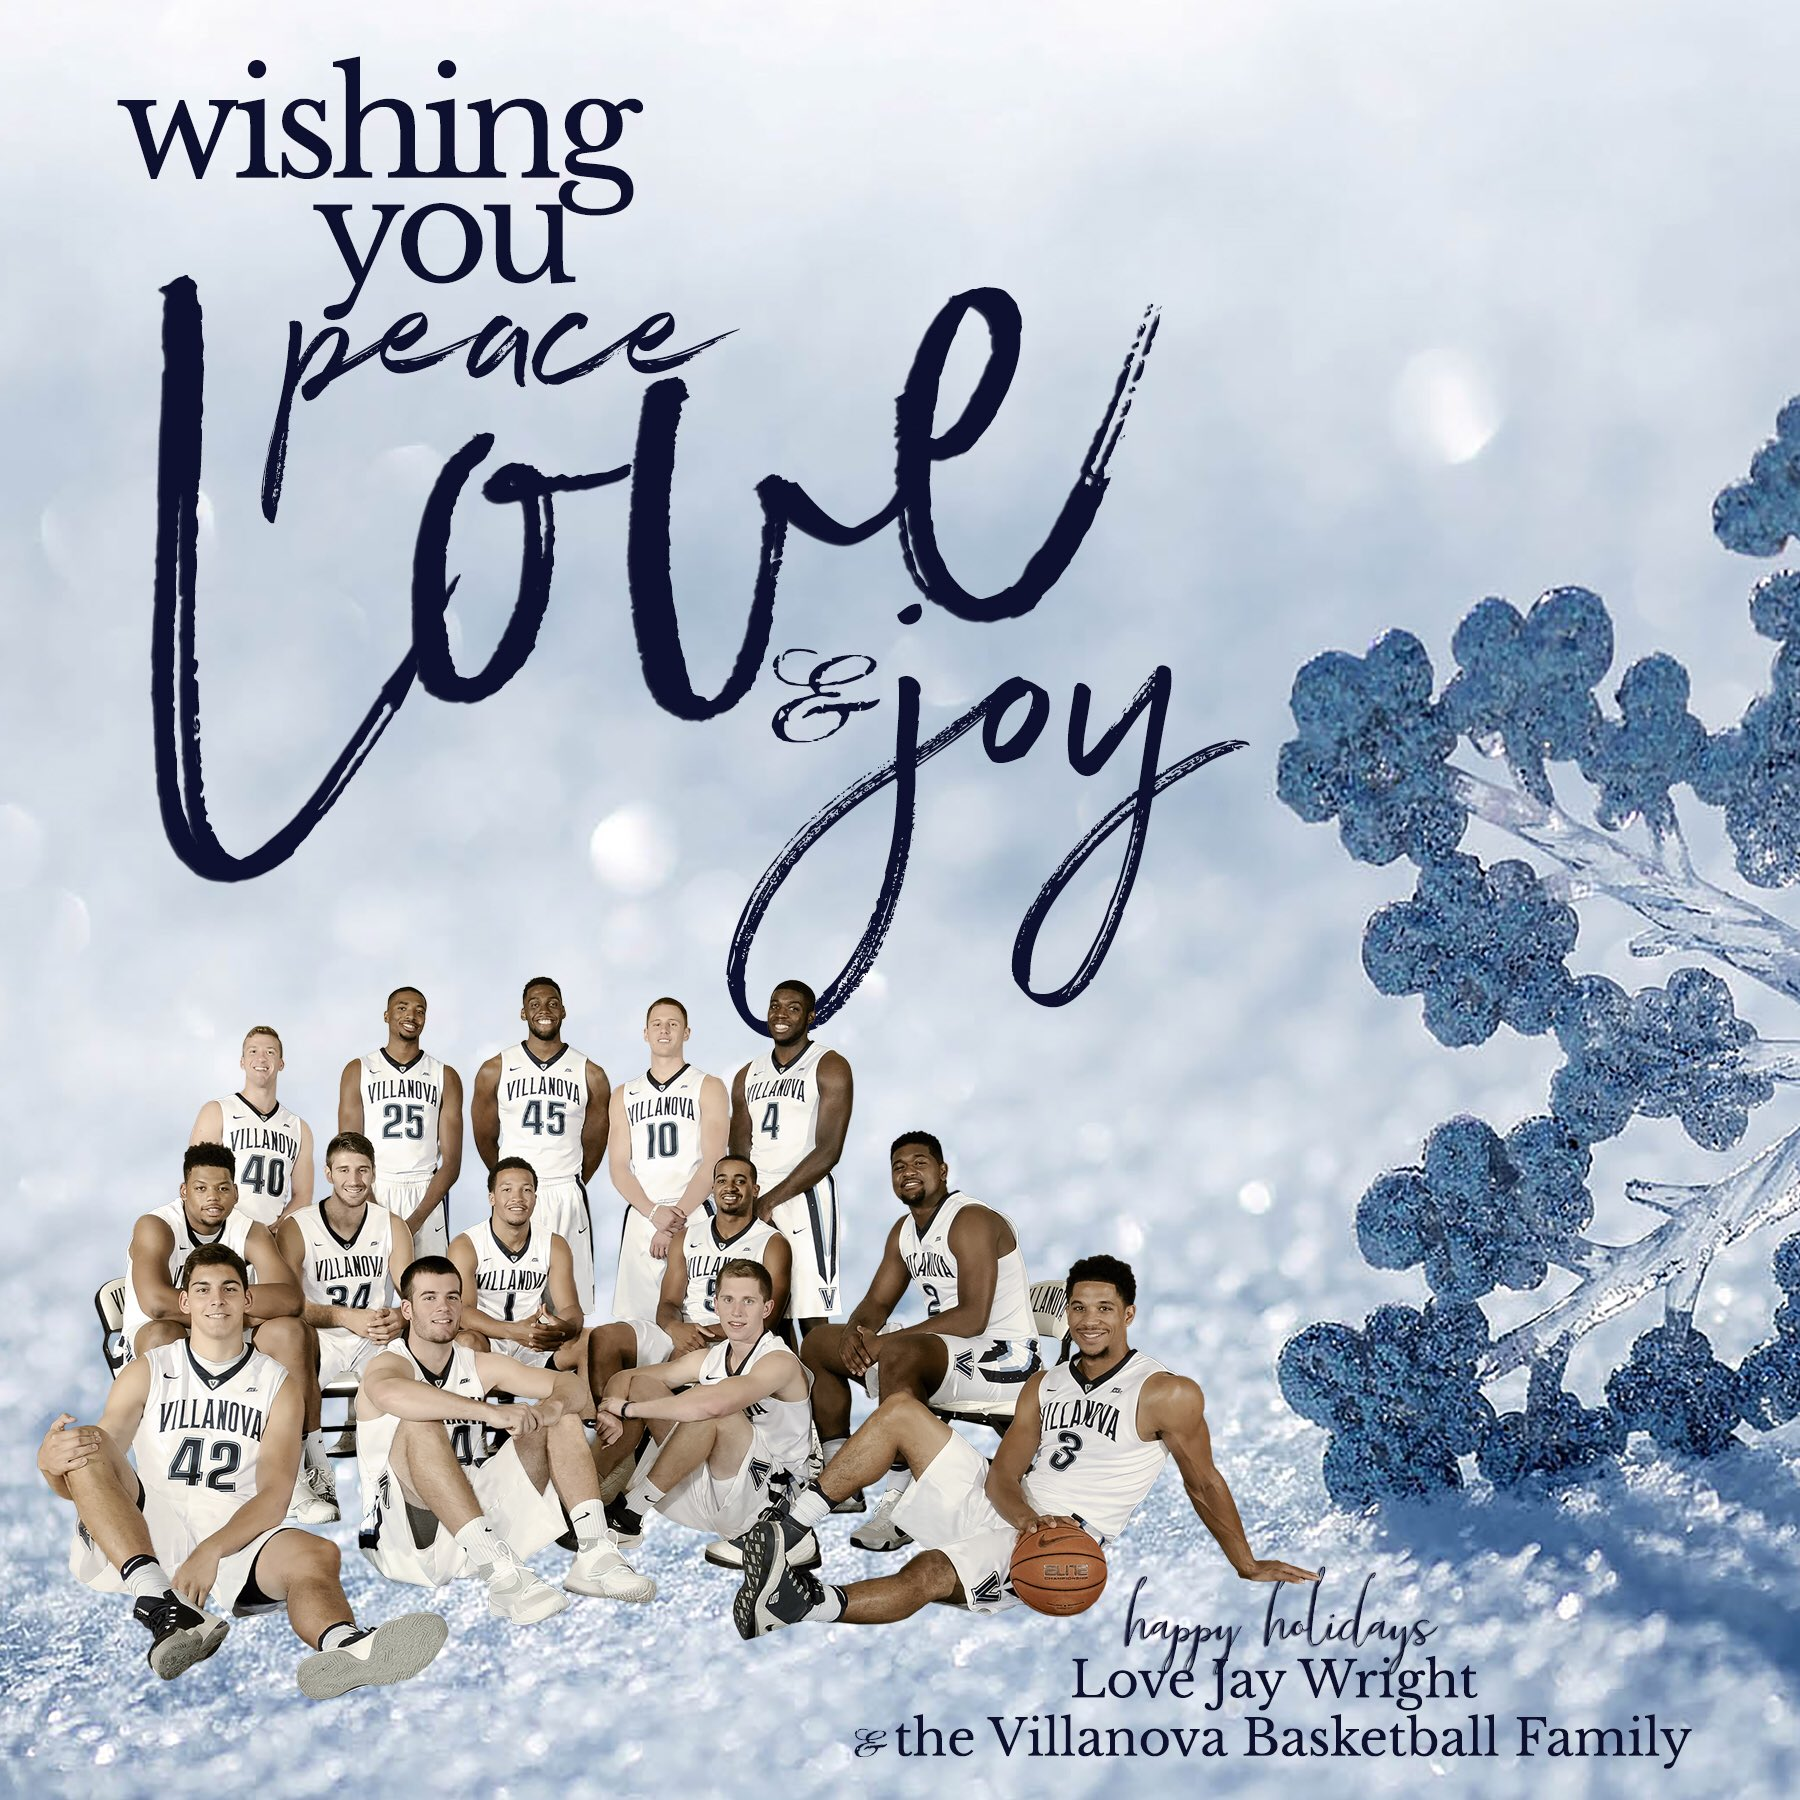 Merry Christmas #NovaNation !! Enjoy the day with family and friends !! https://t.co/ymqoDf2veW